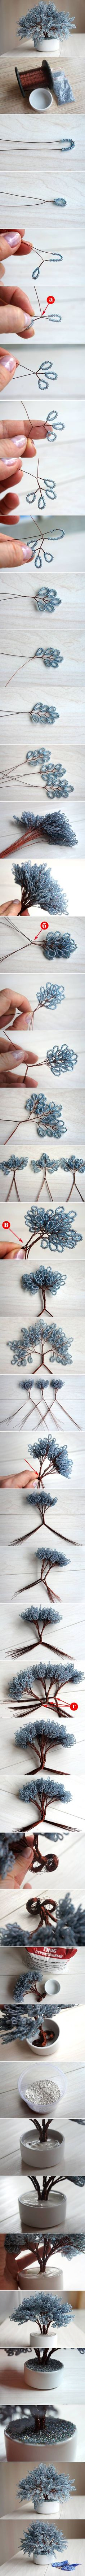 DIY Miniature Tree of Beads ... I shudder to think how long this would take!